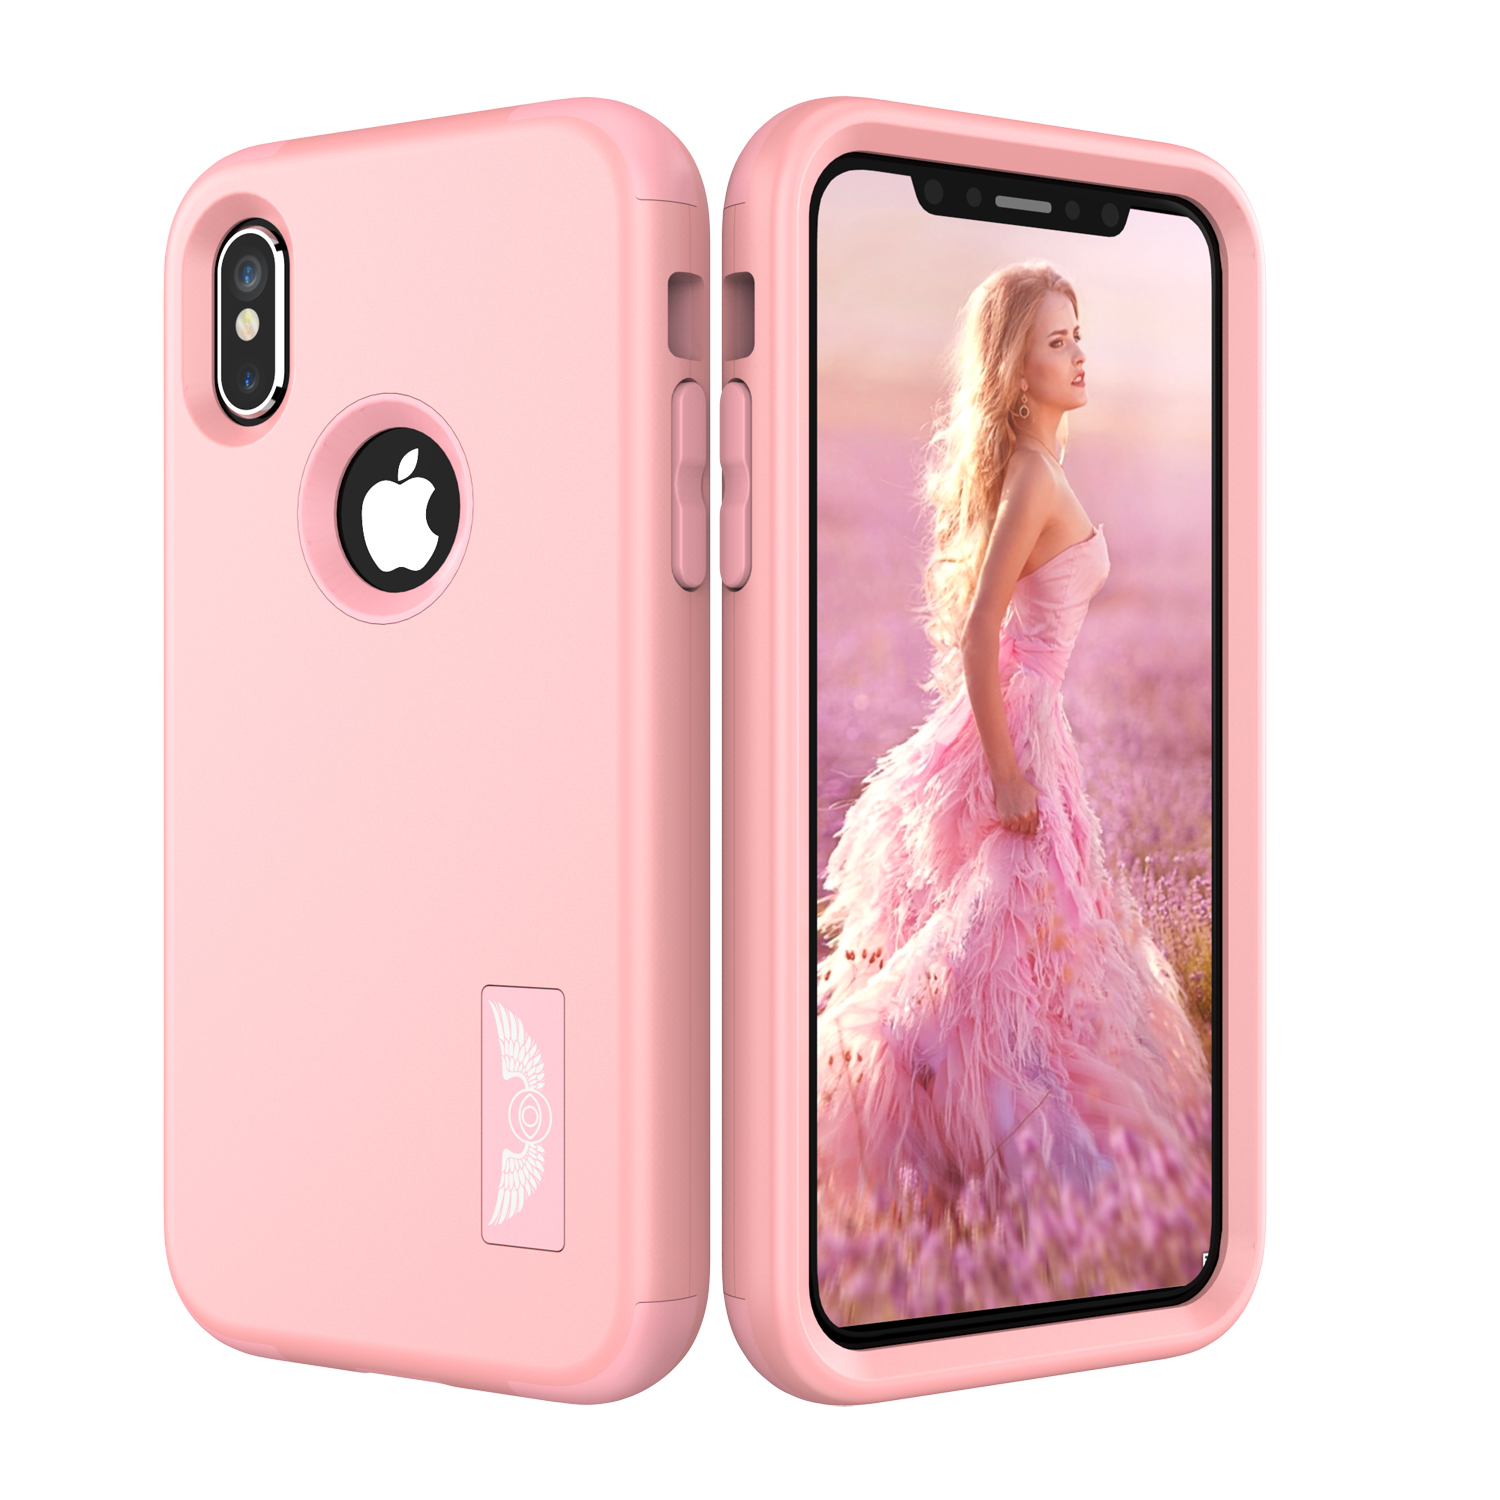 New For Apple iPhone X Protect Phone Cases Hybrid Dual Layers Shockproof TPU+Hard PC Phone Shell Cover for new iPhoneX...  iphone x cases 3 layers New For Apple font b iPhone b font font b X b font Protect Phone font